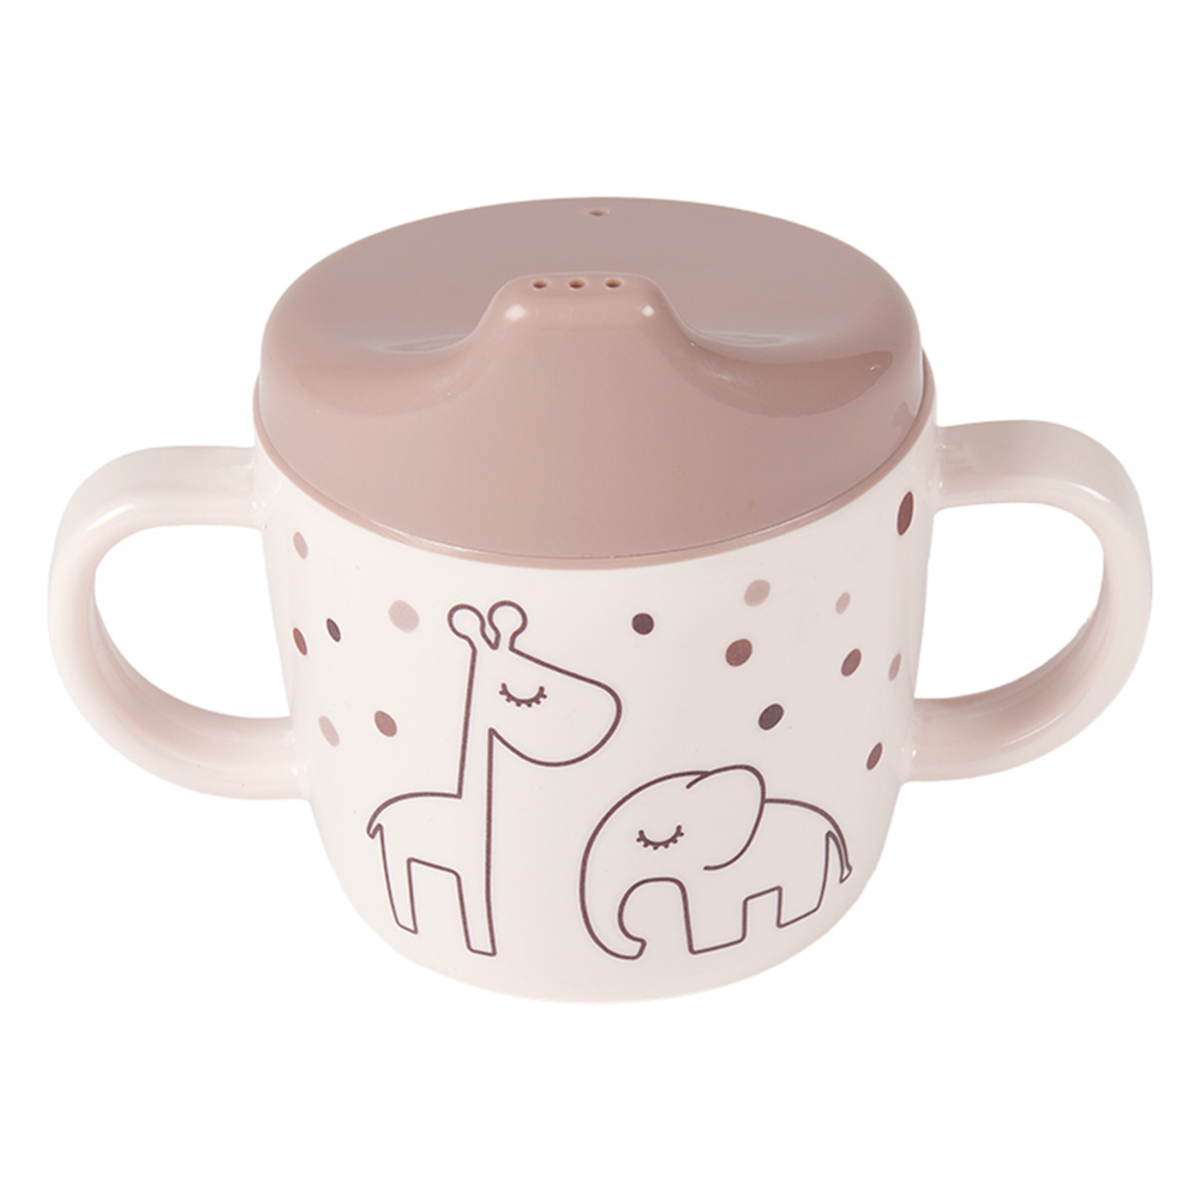 Tasse & Verre Tasse d'Apprentissage Dreamy Dots Rose - 230 ml Tasse d'Apprentissage Dreamy Dots Rose - 230 ml